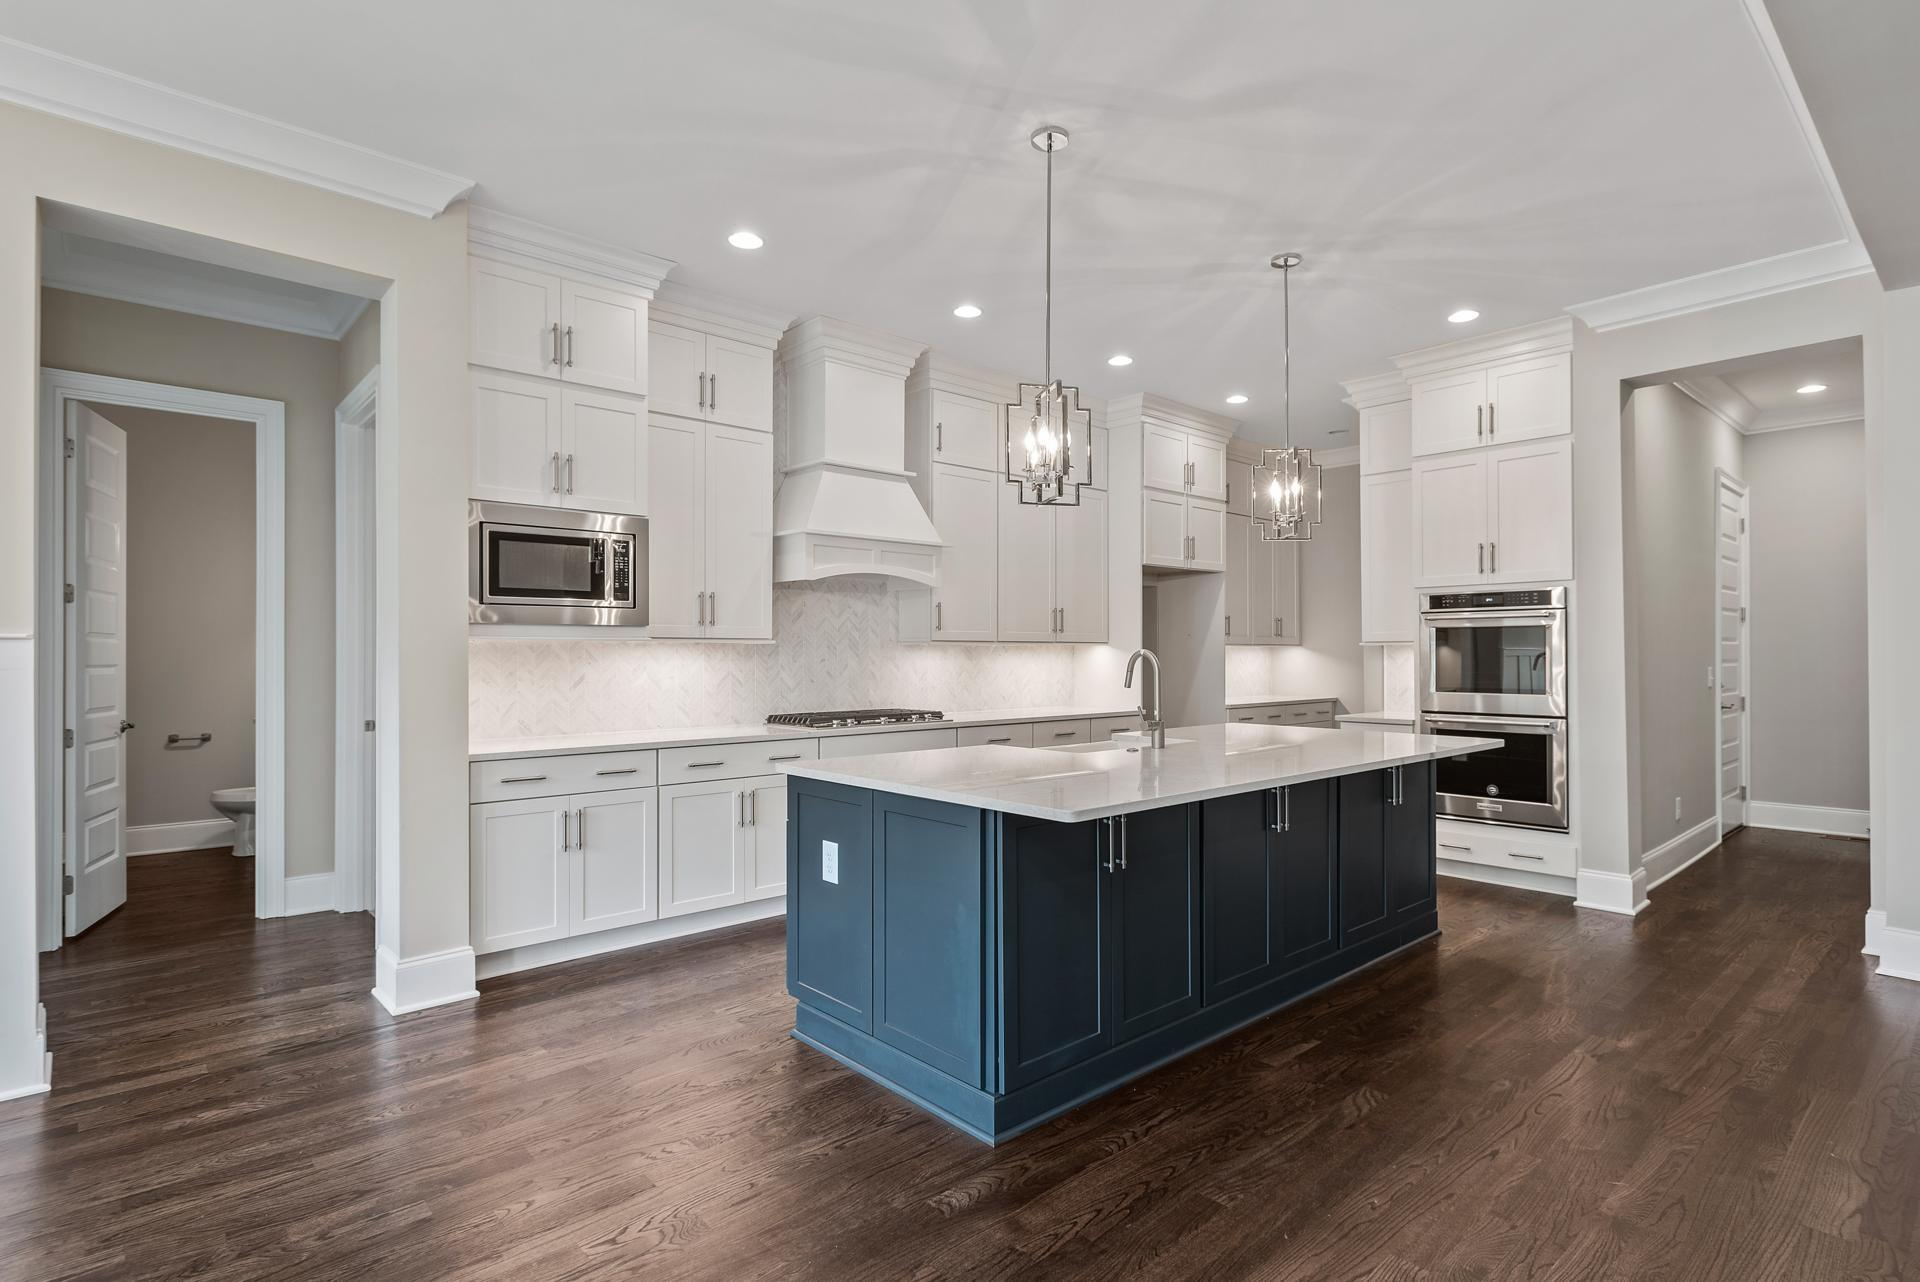 Kitchen featured in the Somerville By Drees Homes in Nashville, TN